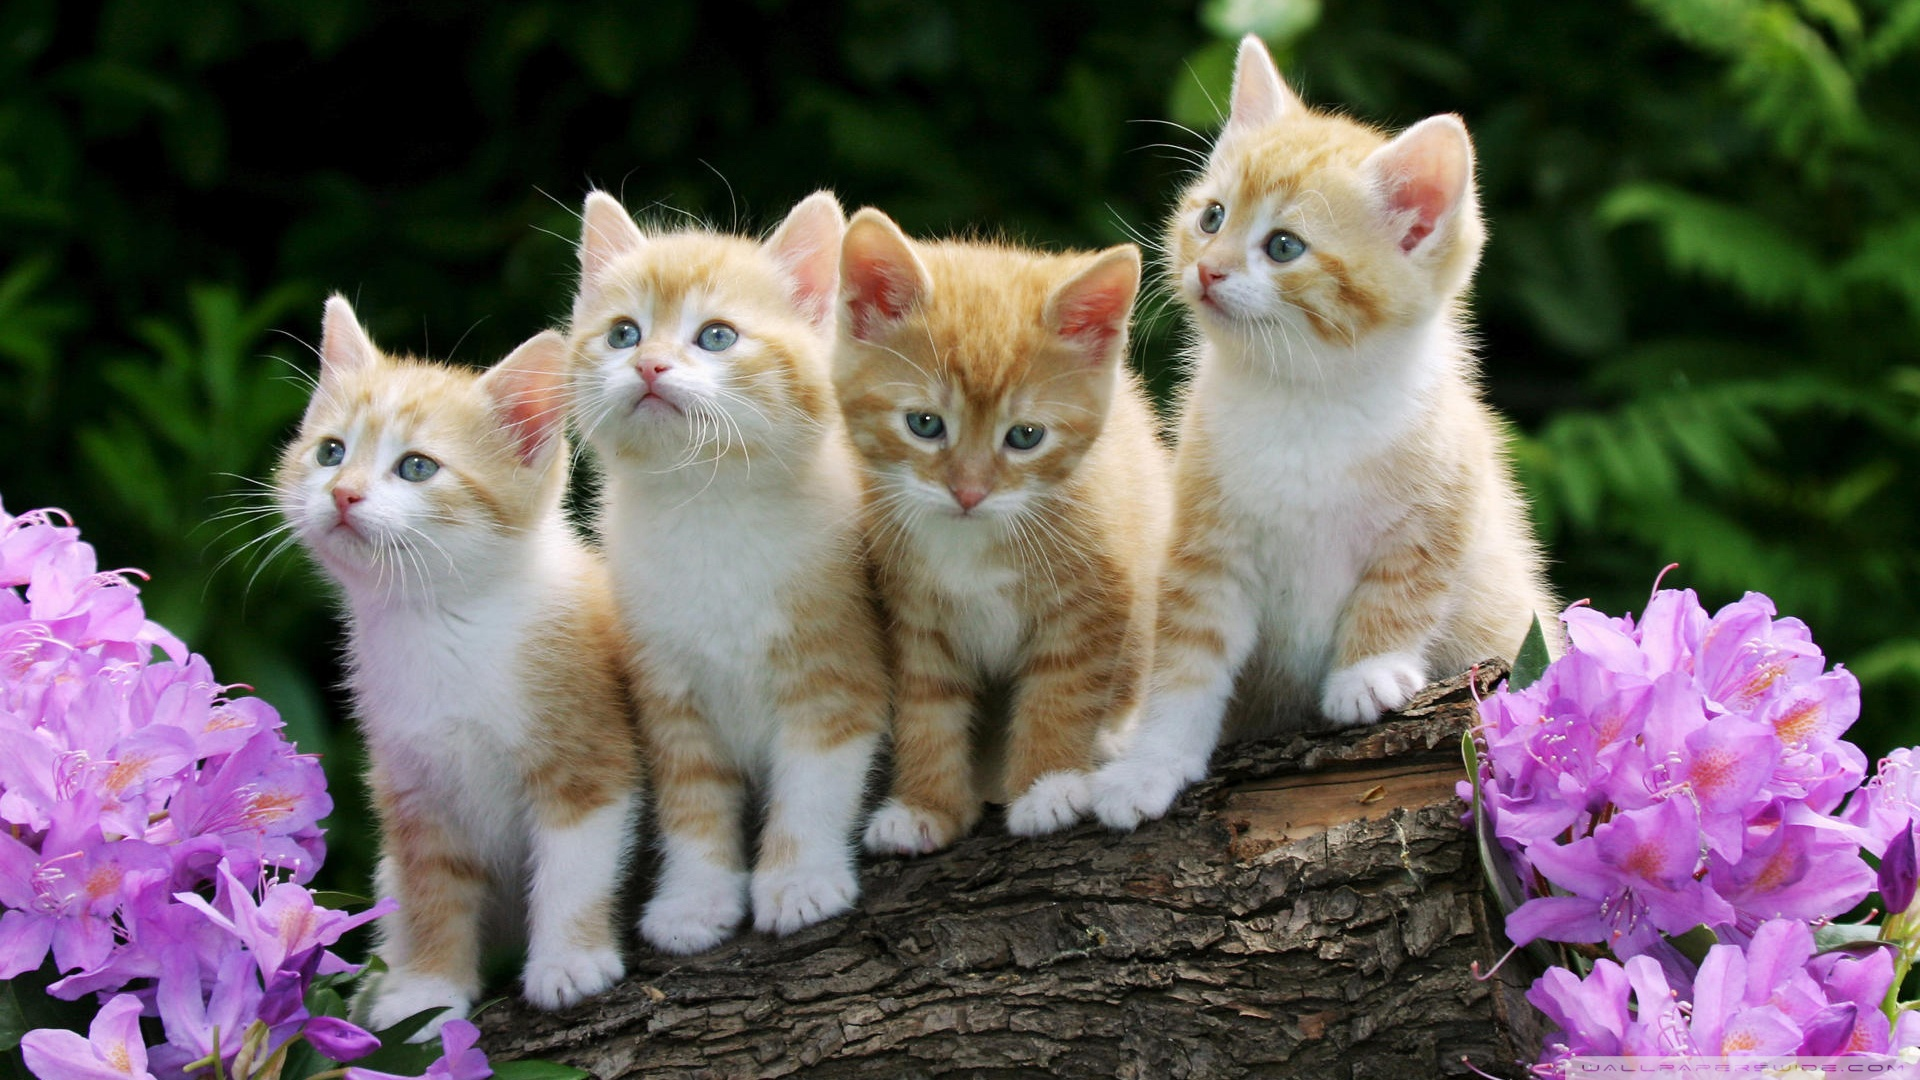 Wallpaper Kittens